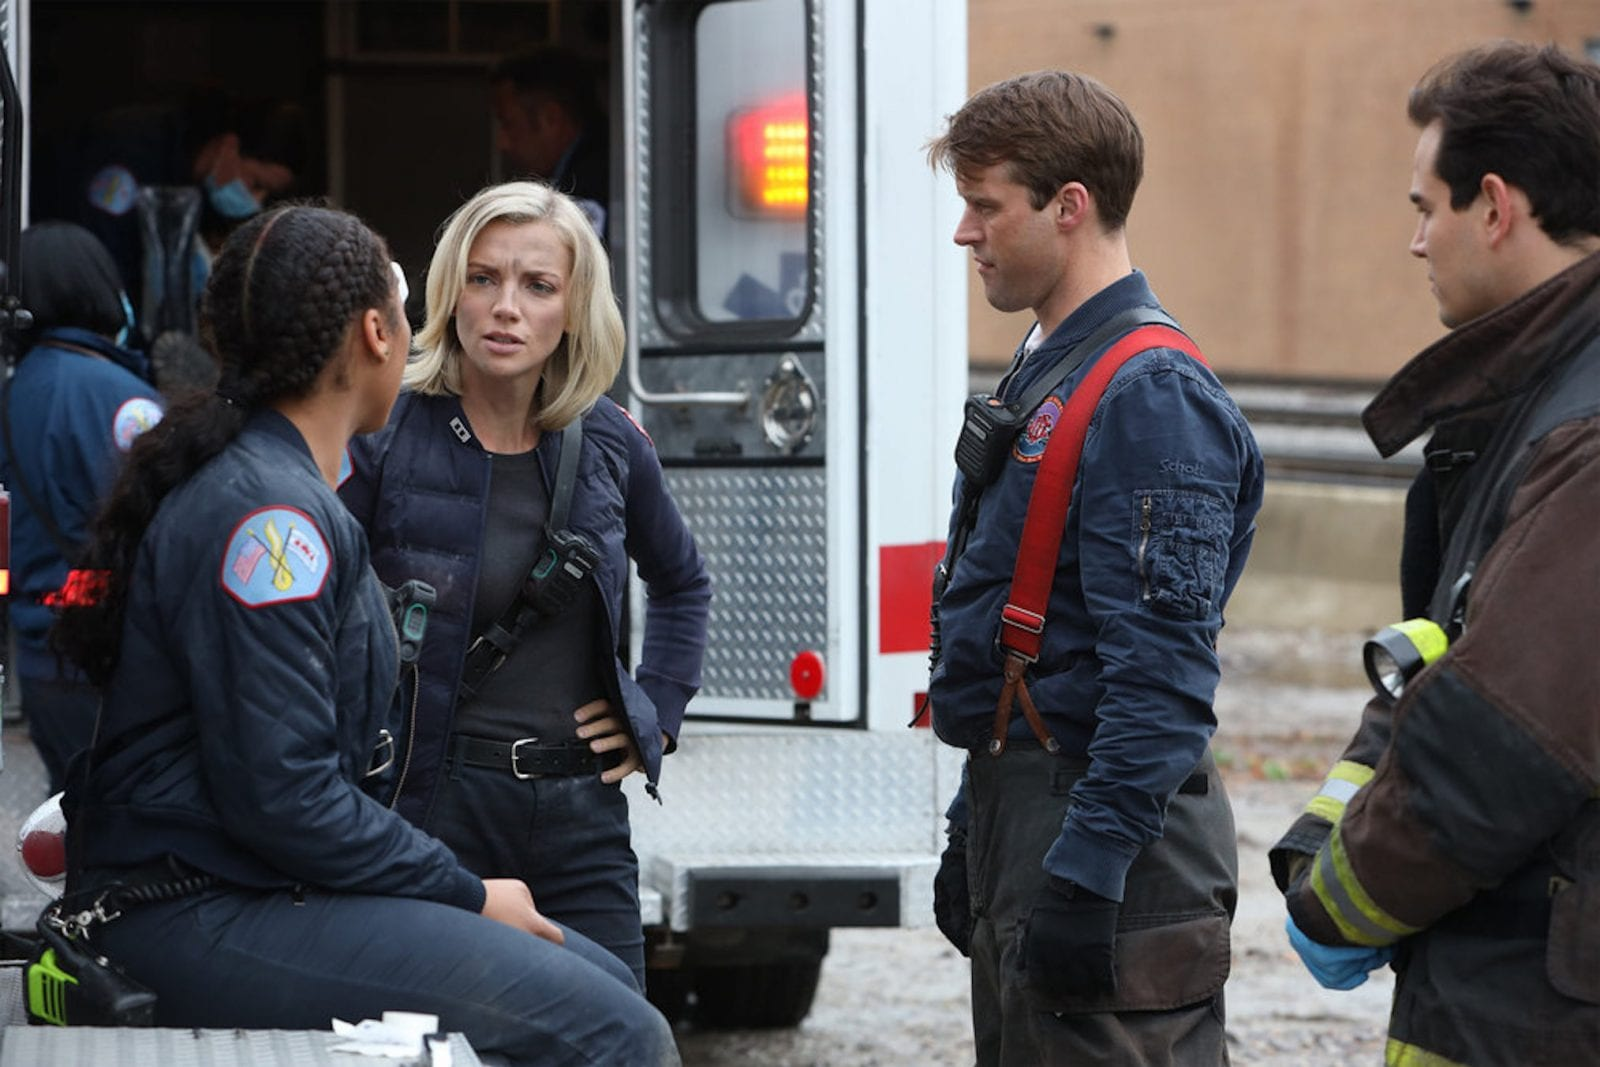 Release Date For Chicago Fire Season 10 In The UK